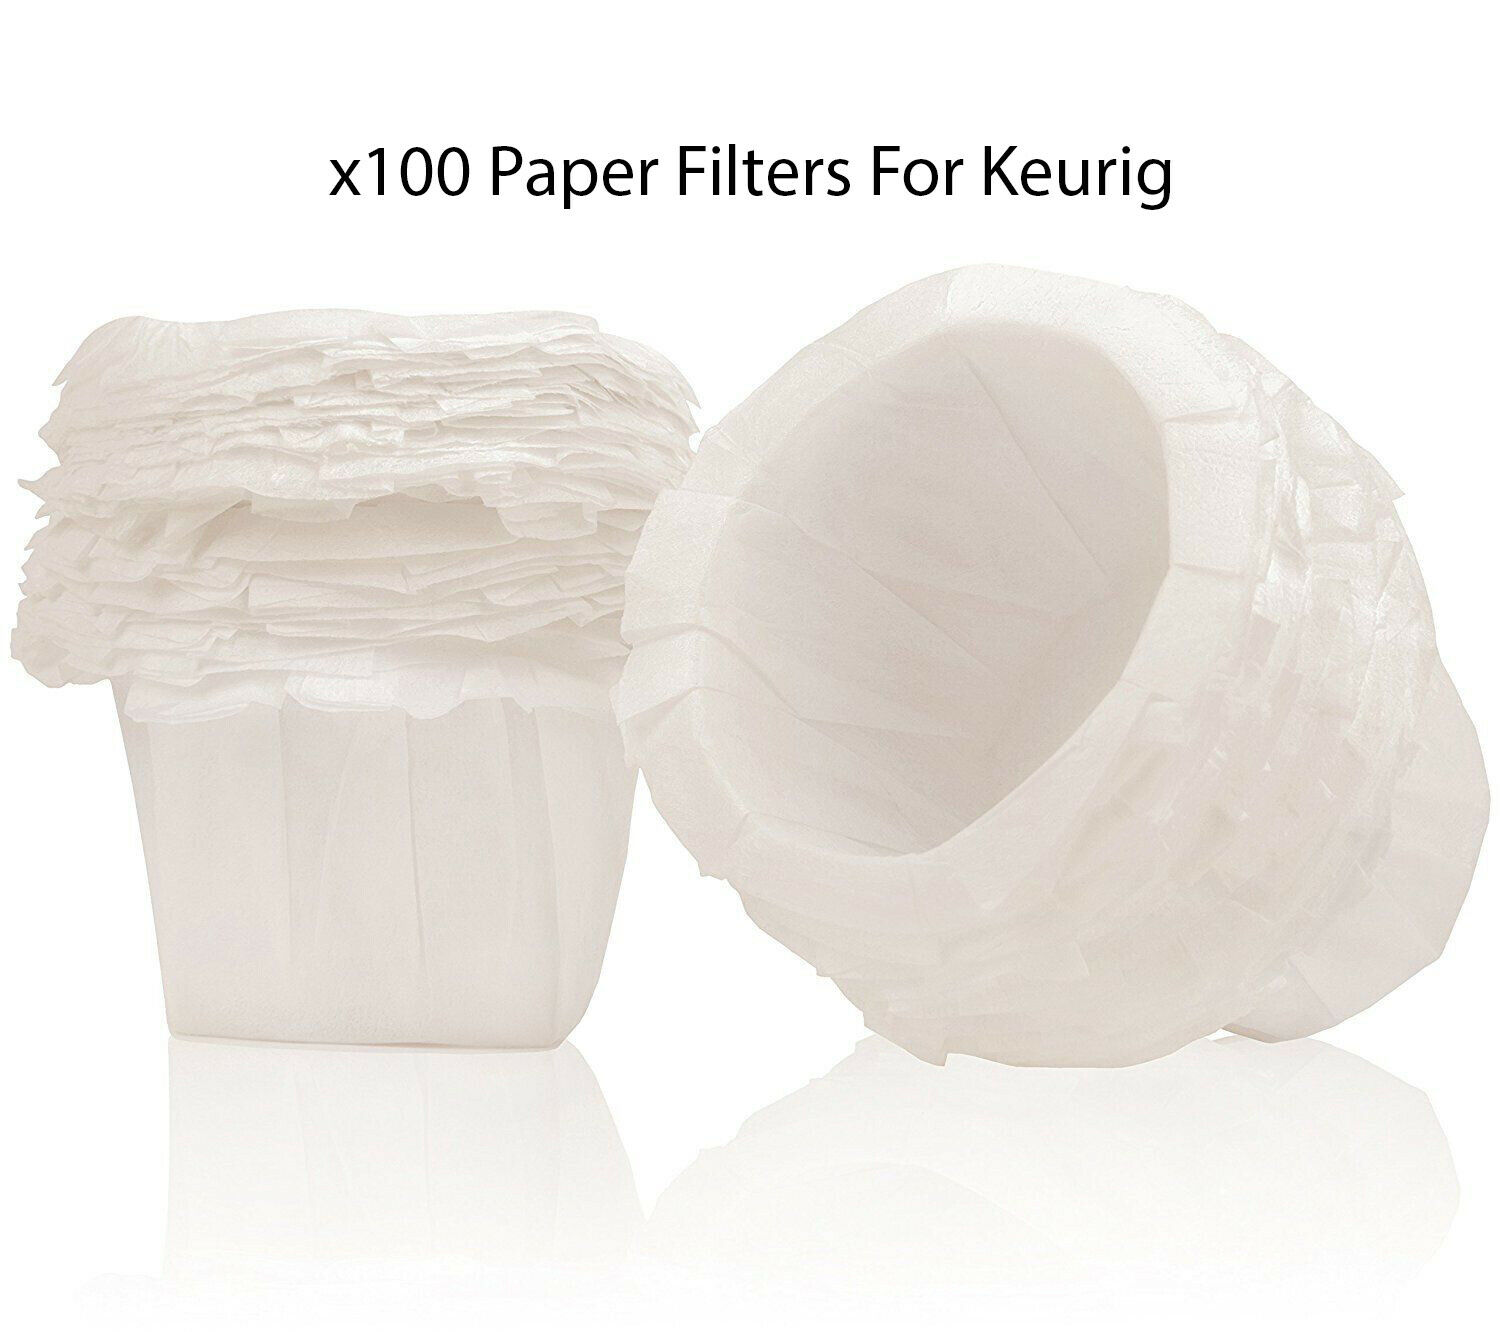 x100 Paper Filters